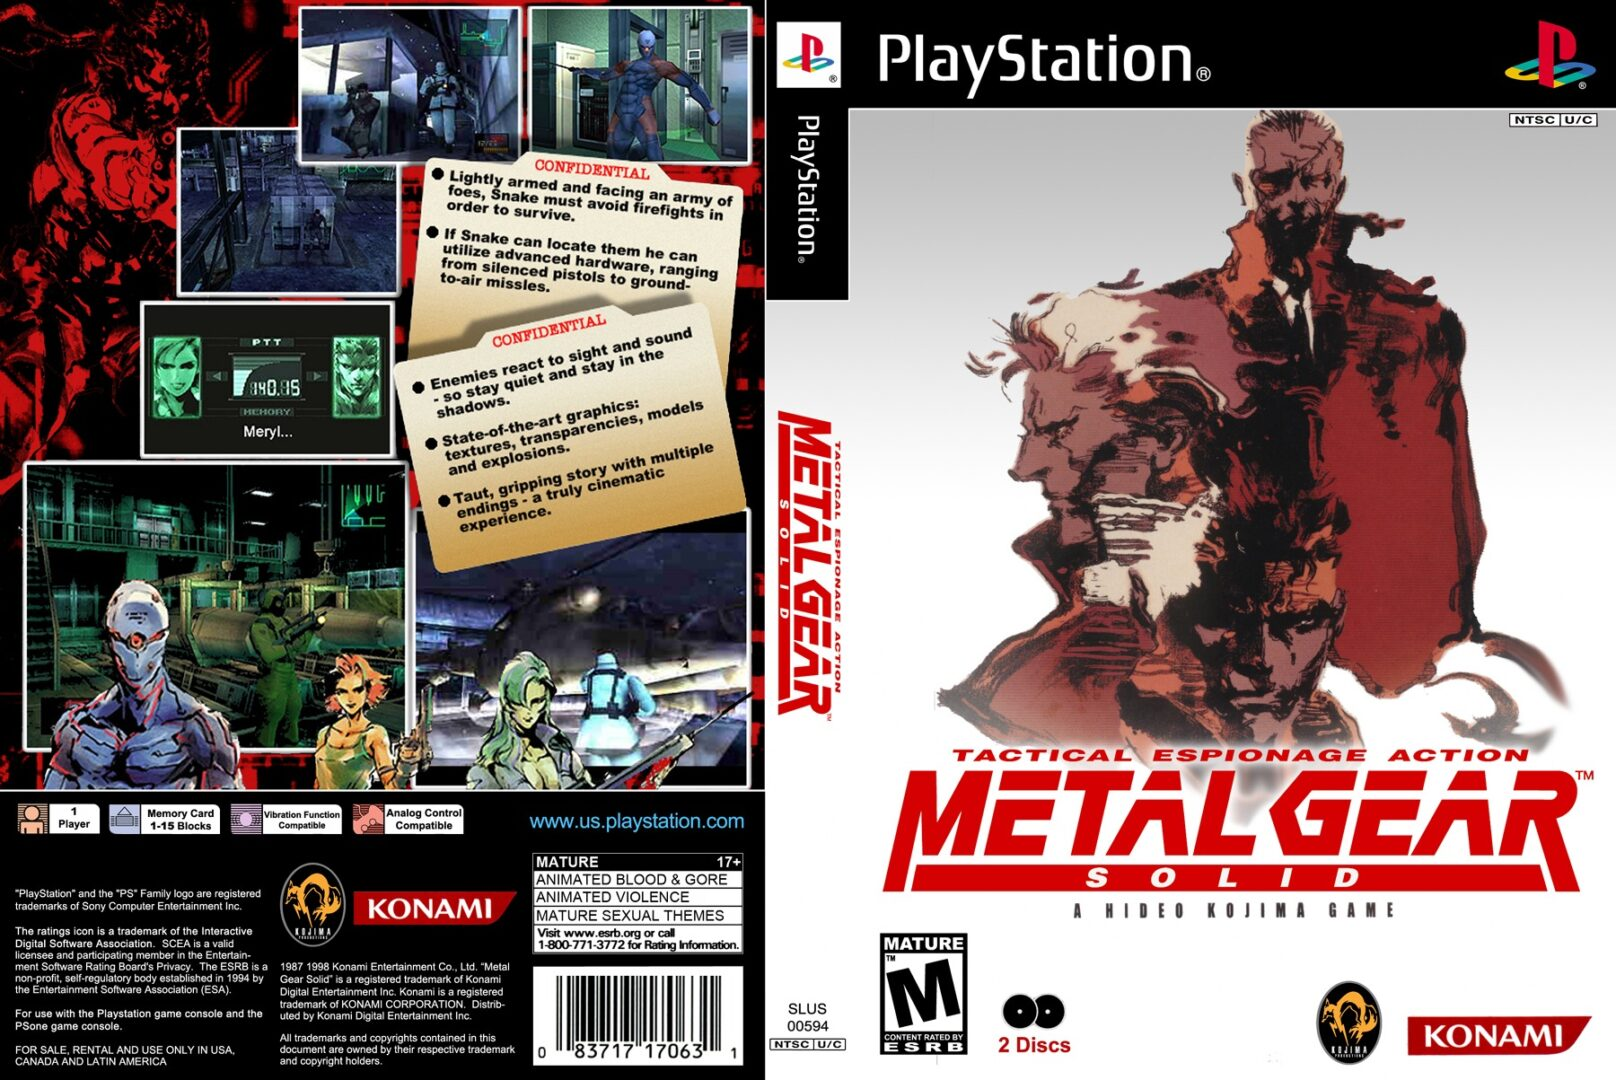 psx metal gear solid cover